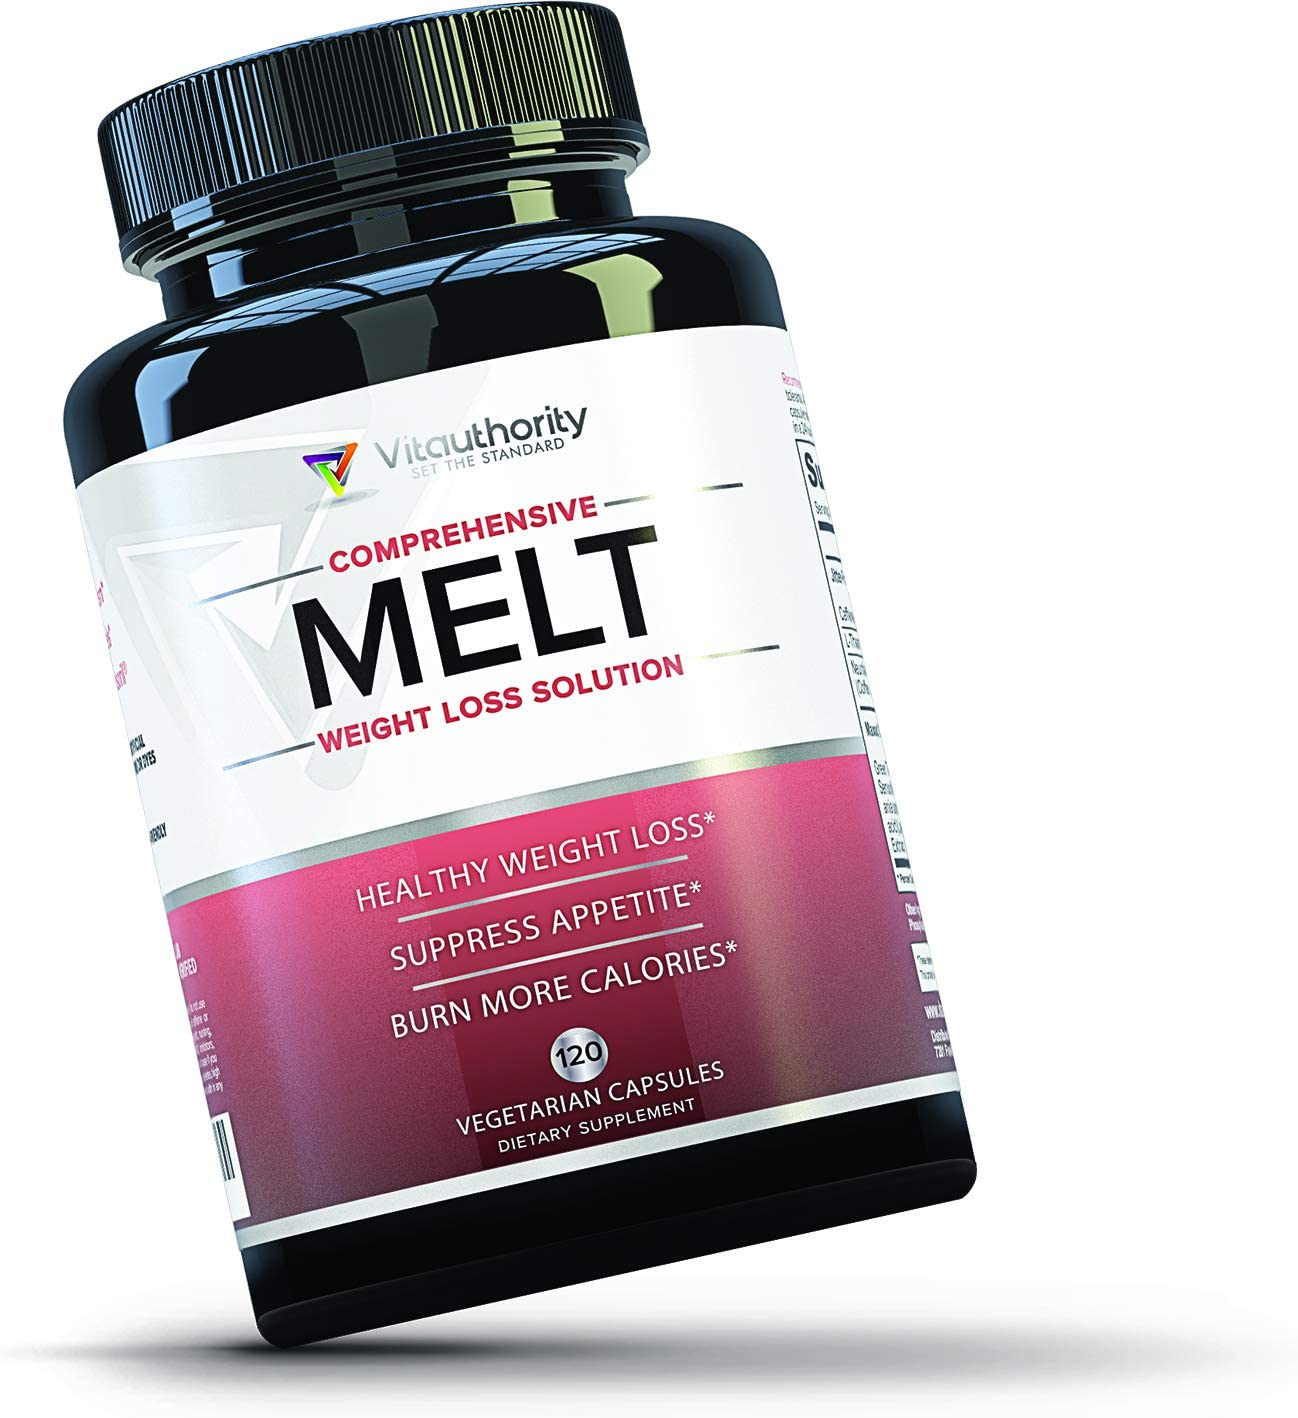 MELT Fat Burner for Women Diet Pills to Support Weight Loss for Women, Appetite Suppressant and Metabolism Booster with Green Tea EGCG, Sensoril and Acetyl L Carnitine, 120 Vegetarian Capsules